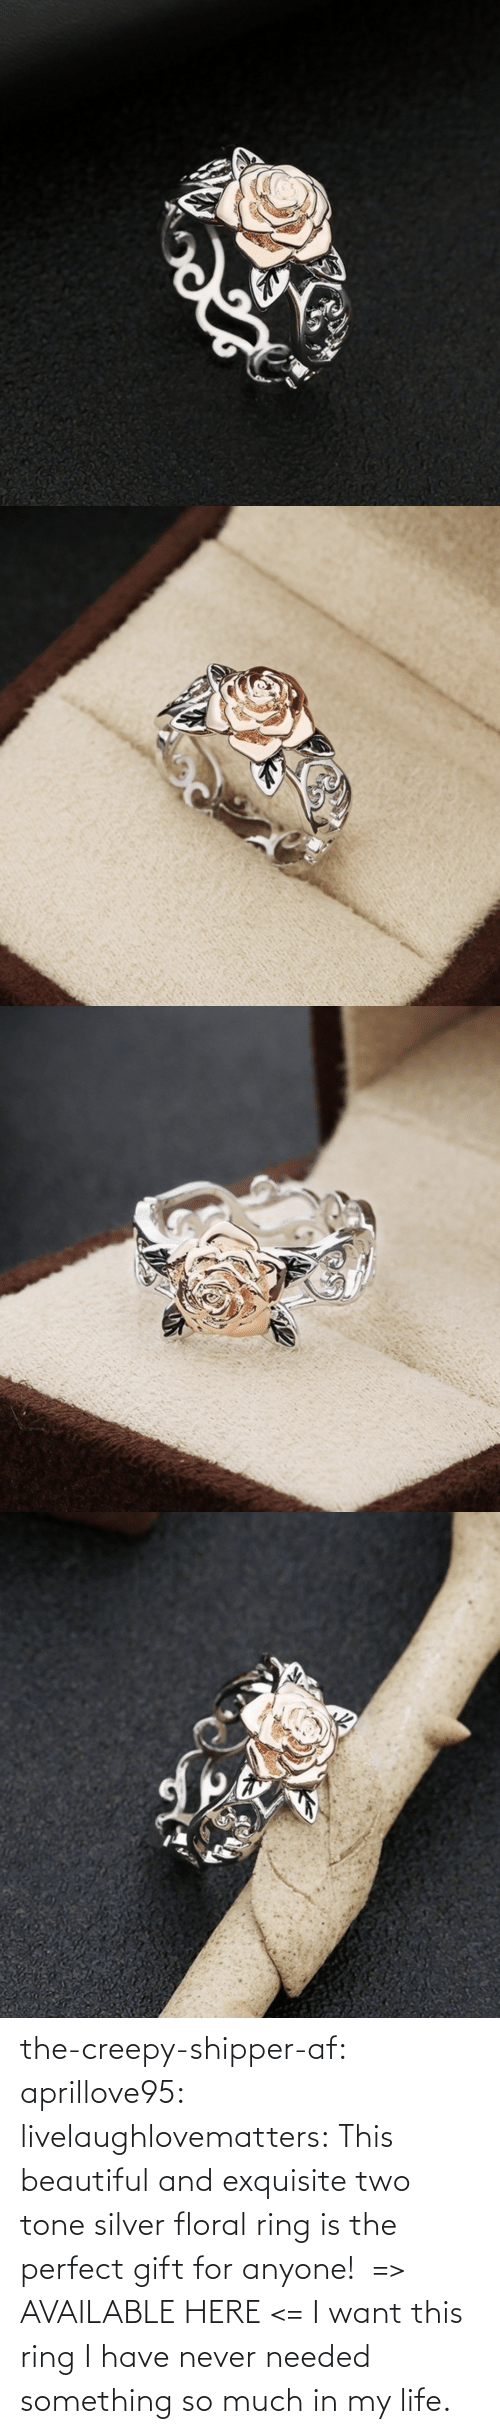 AF: the-creepy-shipper-af: aprillove95:  livelaughlovematters:  This beautiful and exquisite two tone silver floral ring is the perfect gift for anyone!  => AVAILABLE HERE <=    I want this ring   I have never needed something so much in my life.